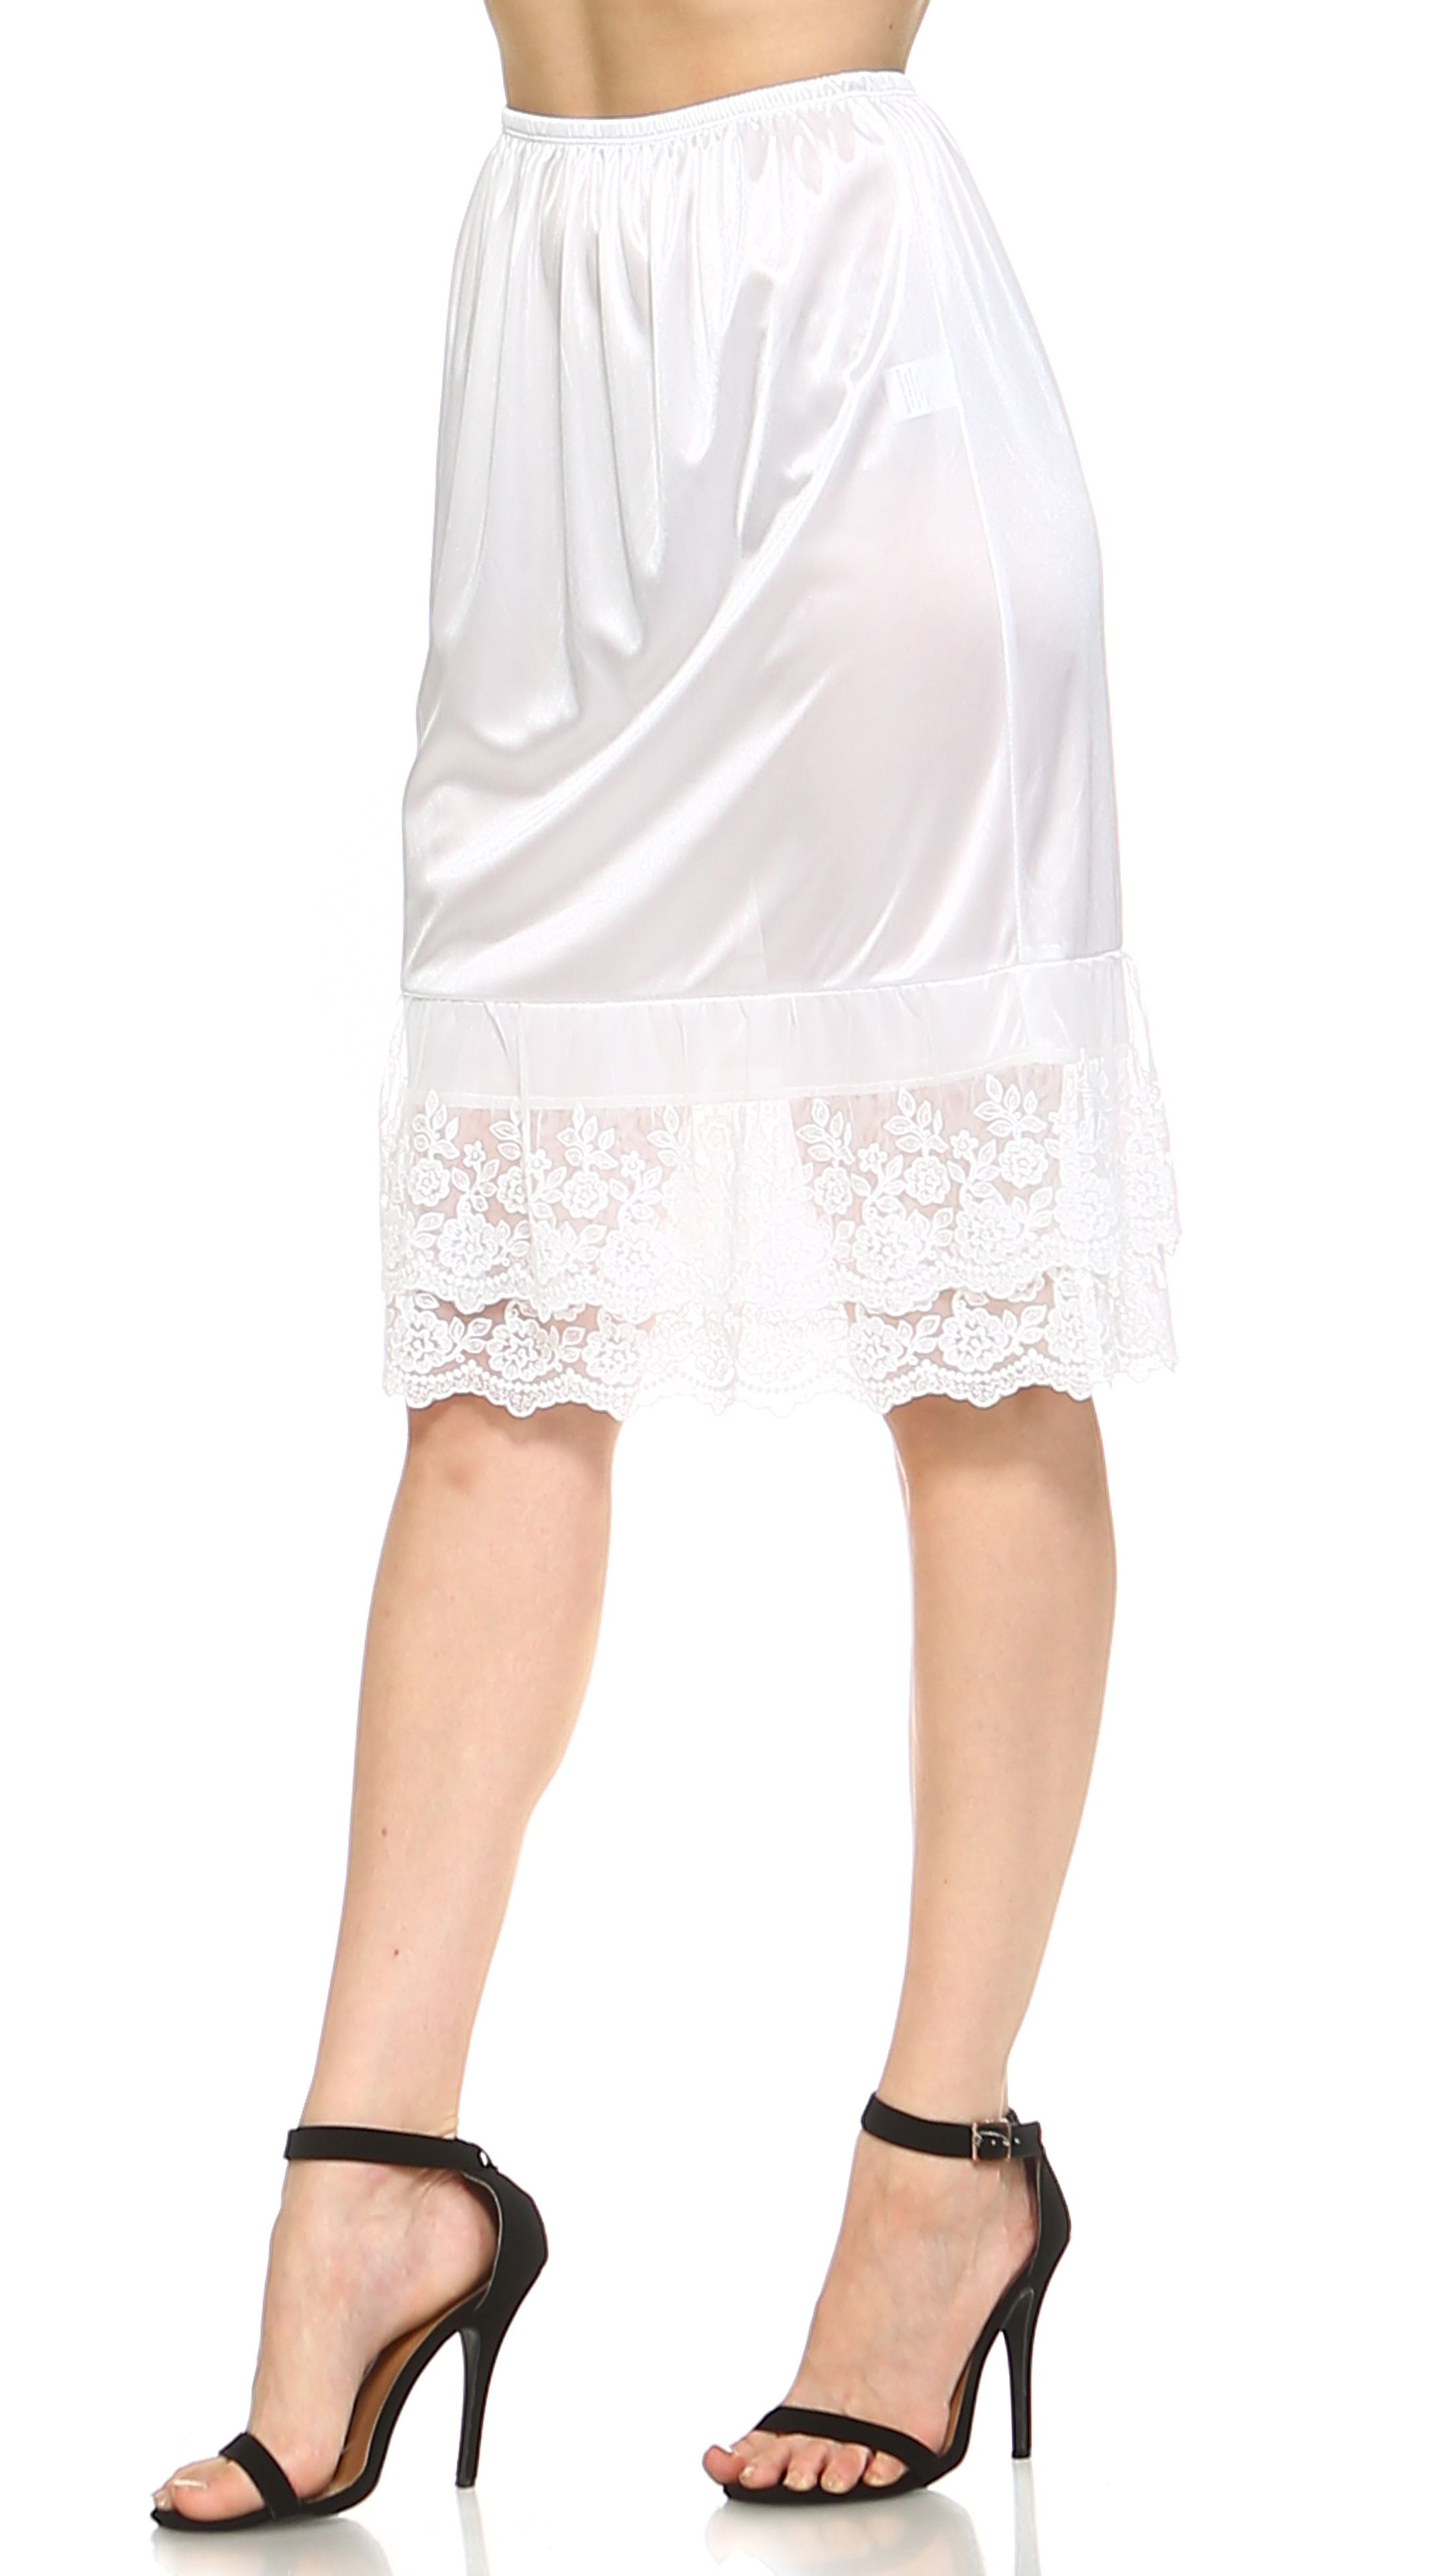 31709b8f3428 Women's Long Double Layered Lace Satin Skirt Extender Underskirt Half Slip# Layered, #Lace, #Double